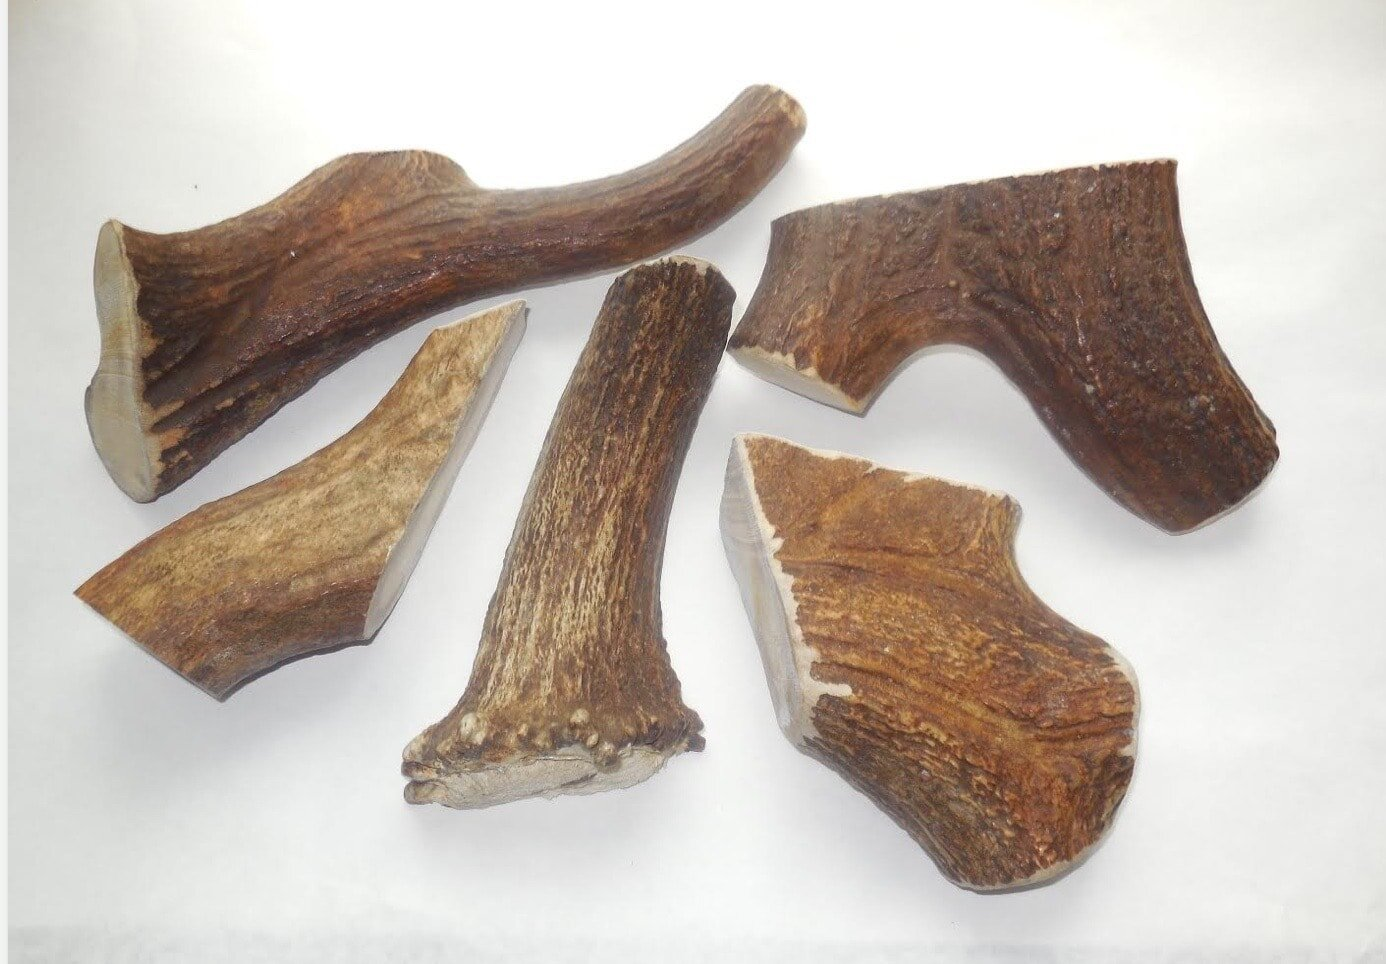 Naturally shed antlers are a great chewing treat for your pup and a safer  alternative  to rawhide.